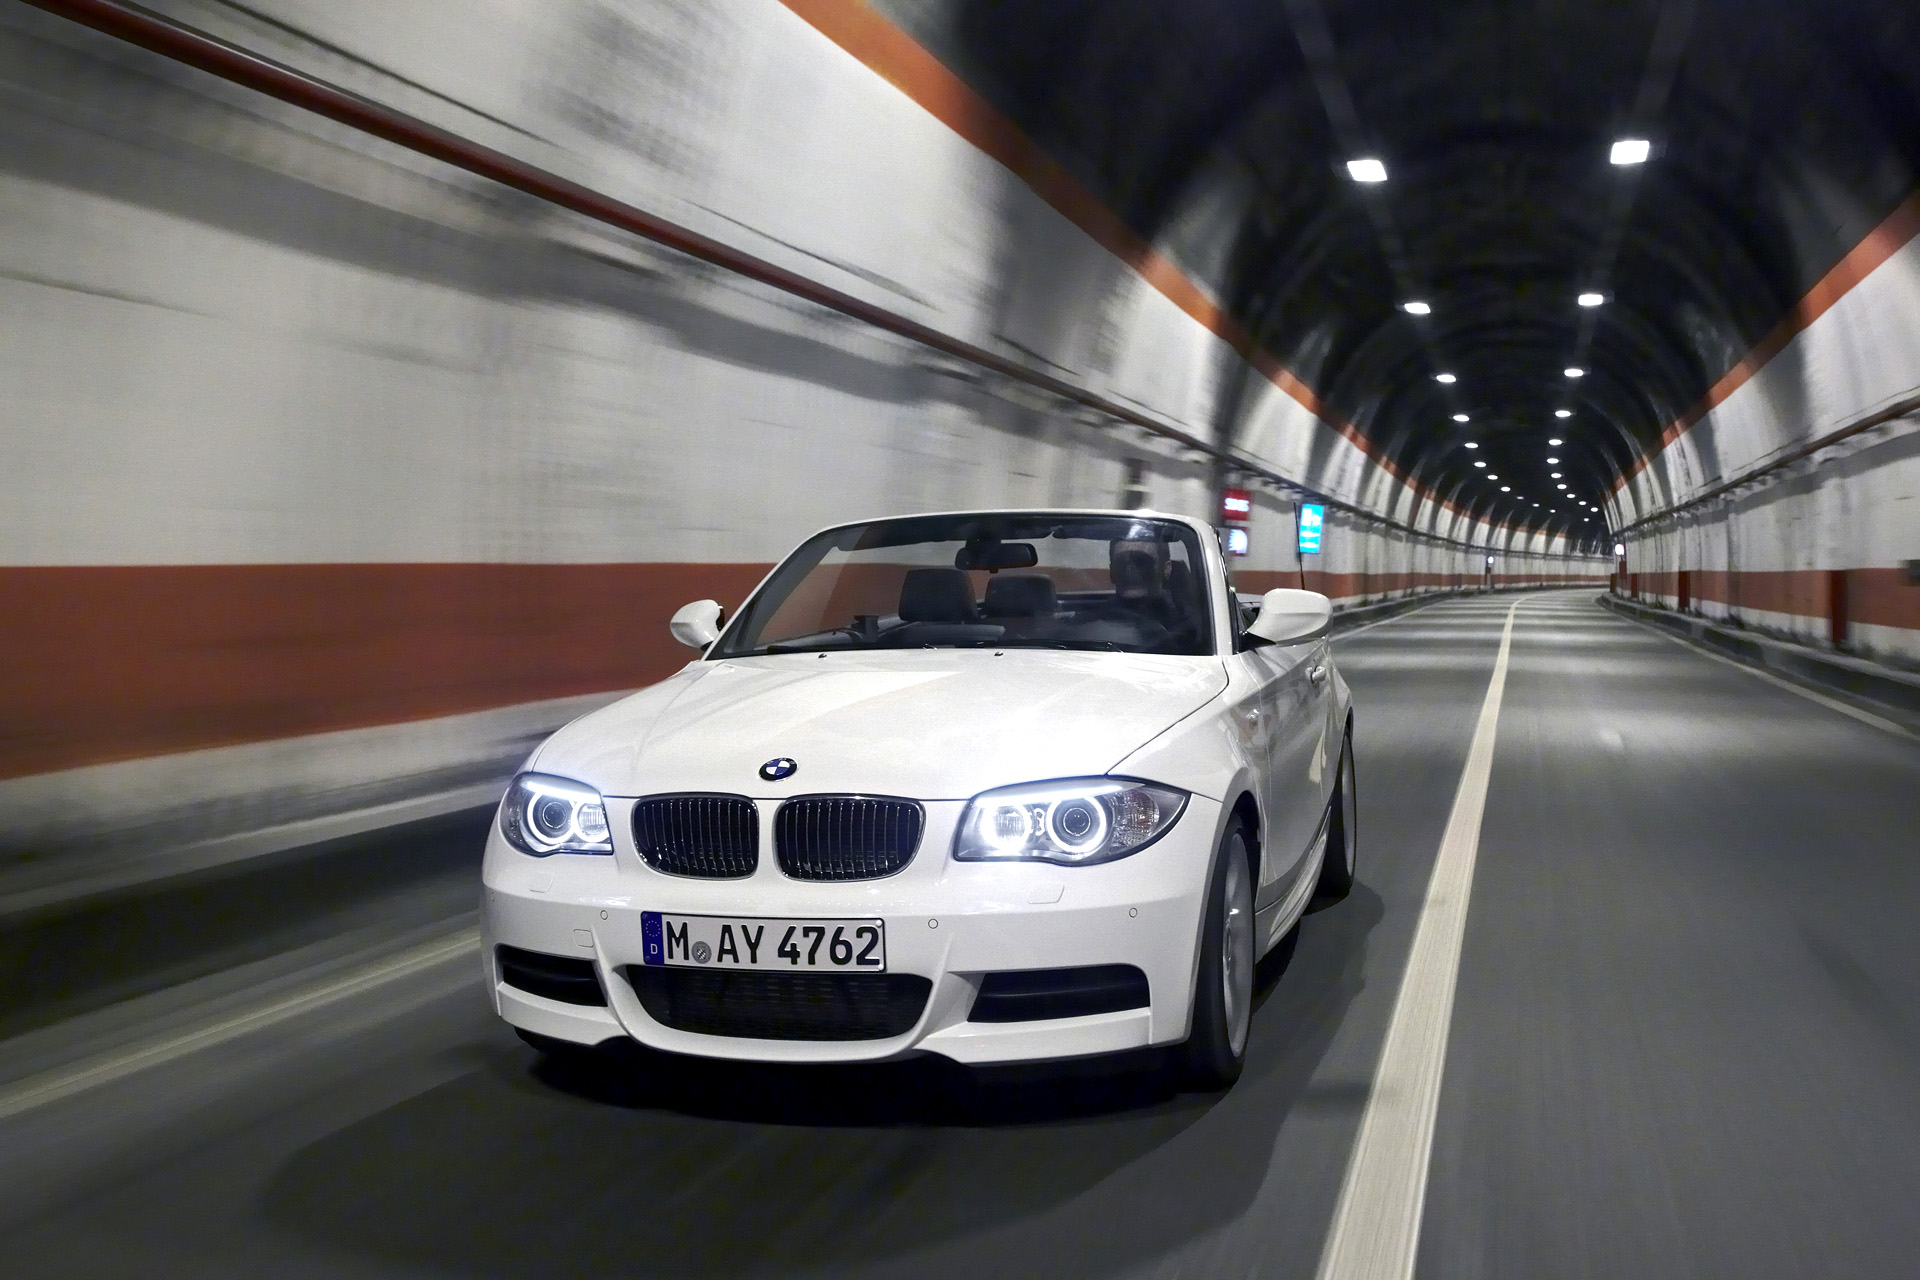 2012 Bmw 1 Series Lci Facelift Official Thread Photos